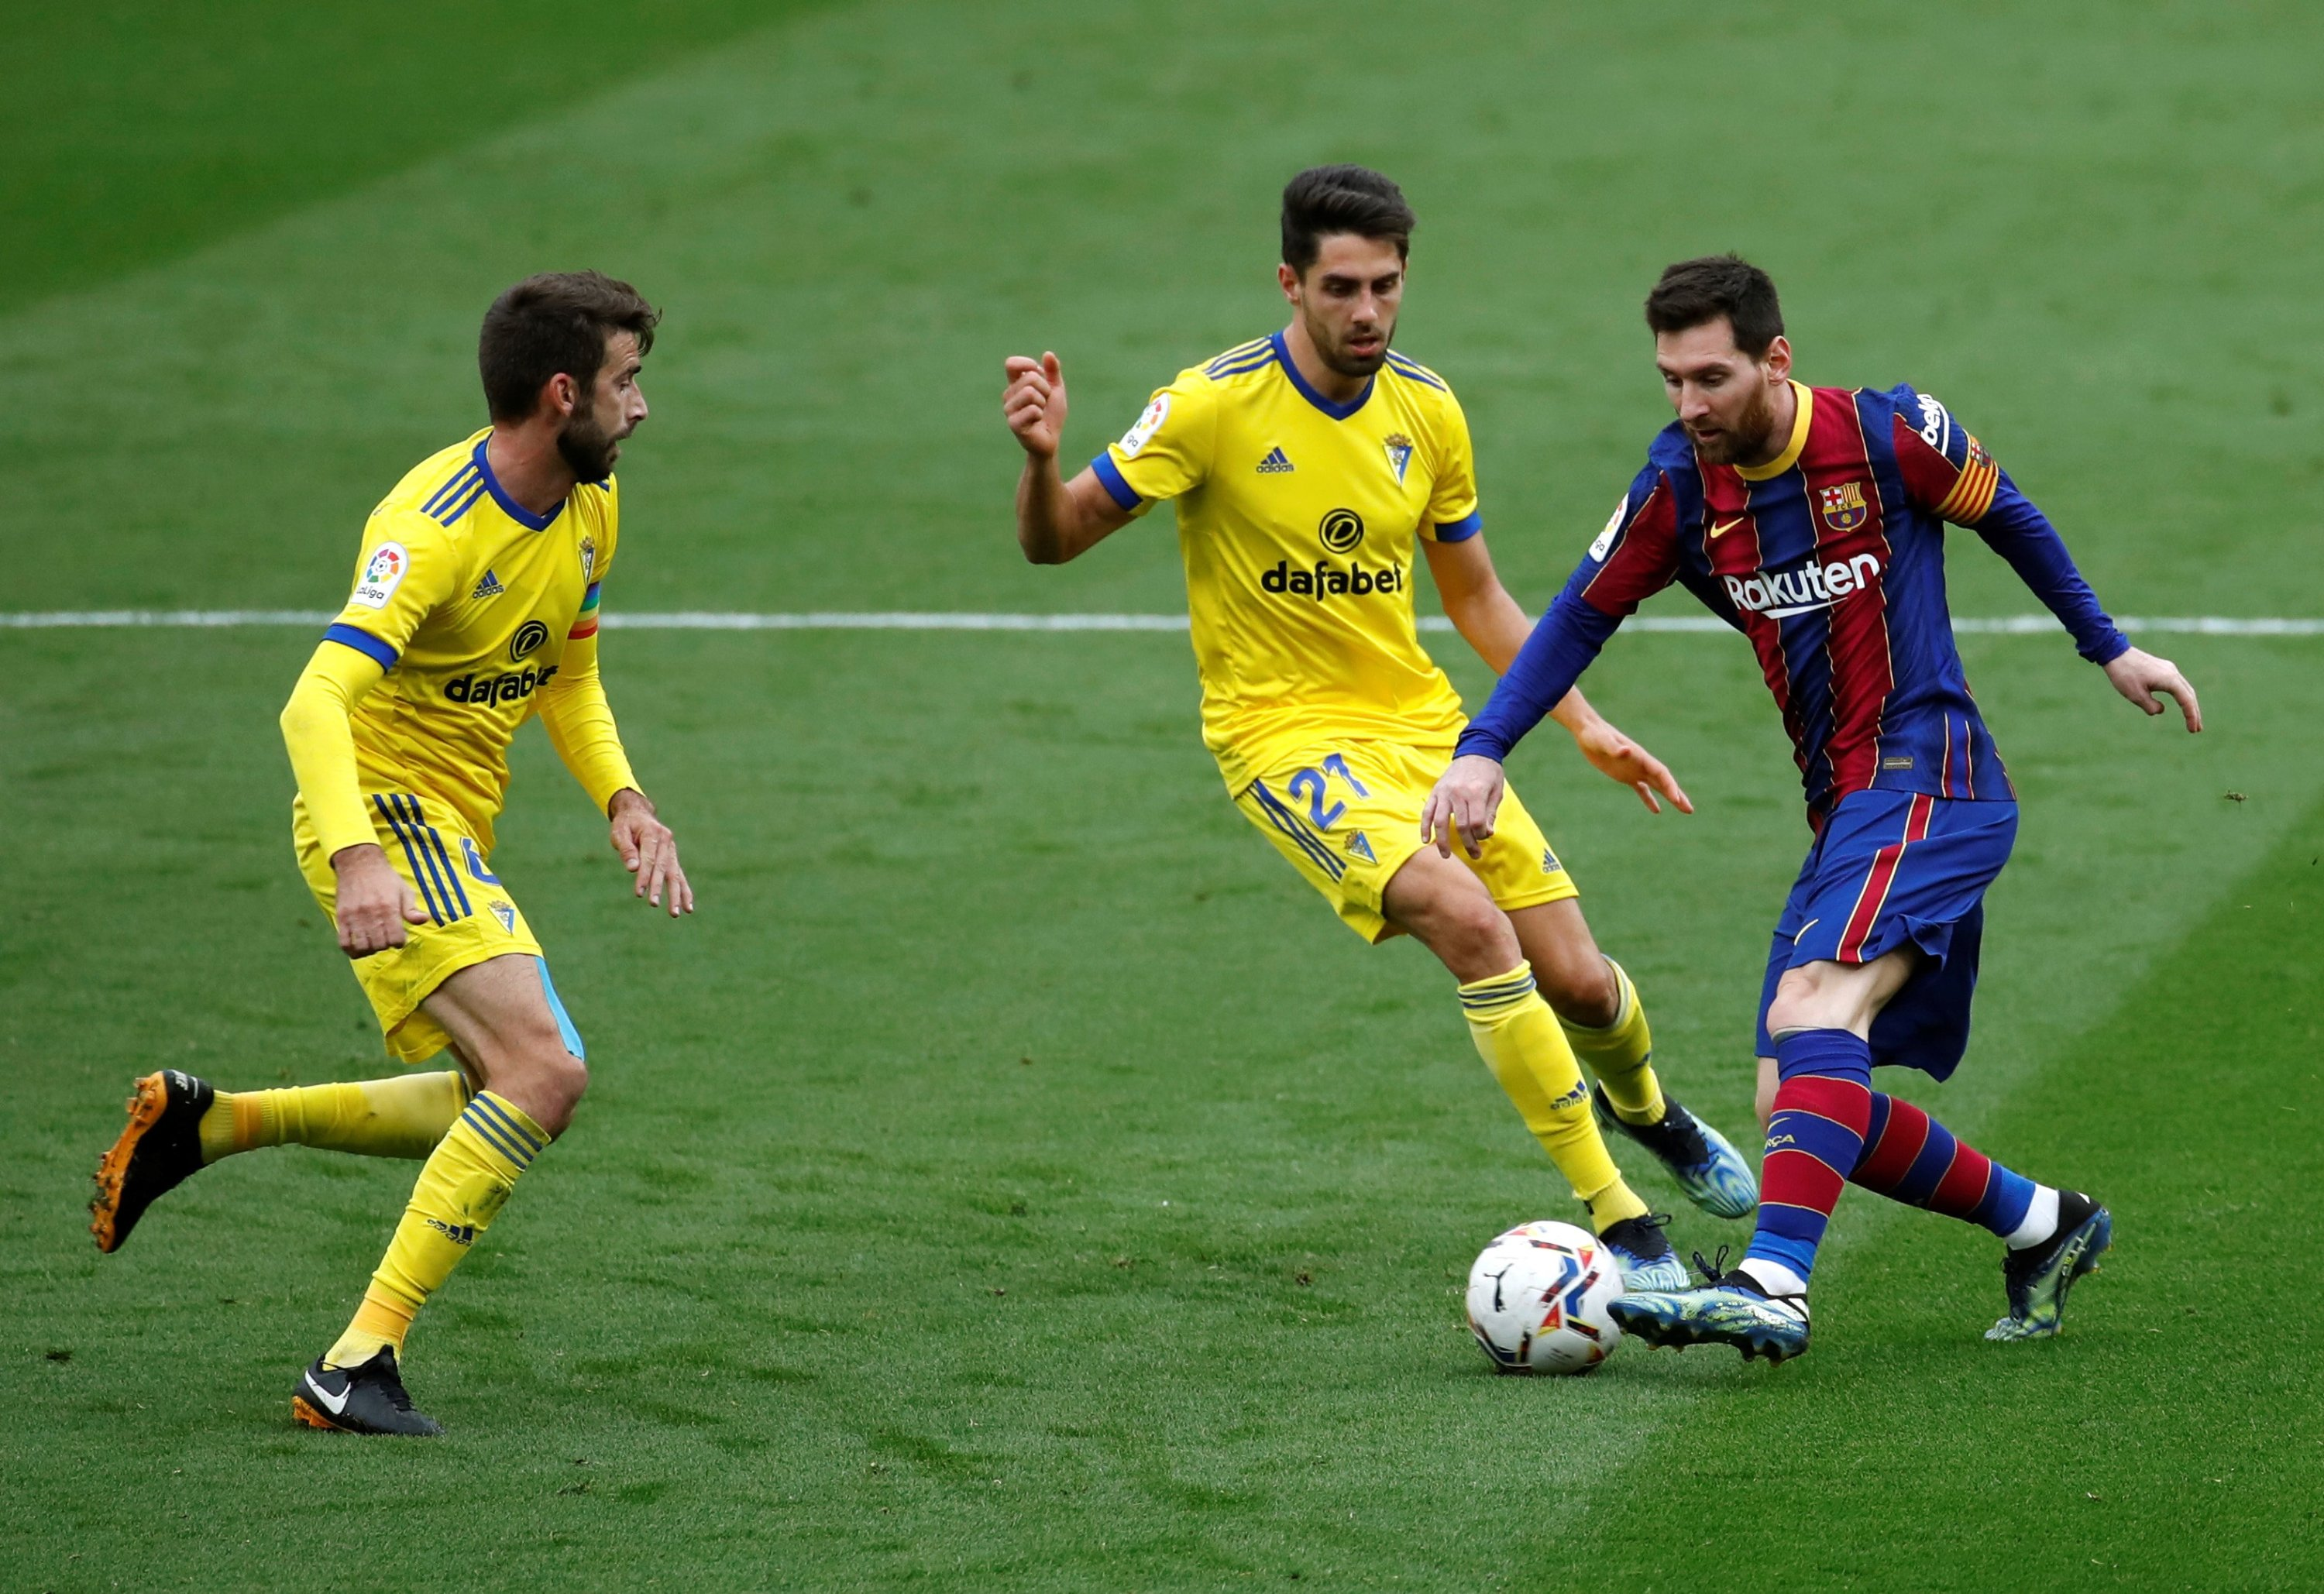 Barcelona's Lionel Messi (R) vies for the ball with Cadiz's Ruben Sobrino (C) during a La Liga match at the Camp Nou, Barcelona, Spain, Feb. 21, 2021. (EPA Photo)